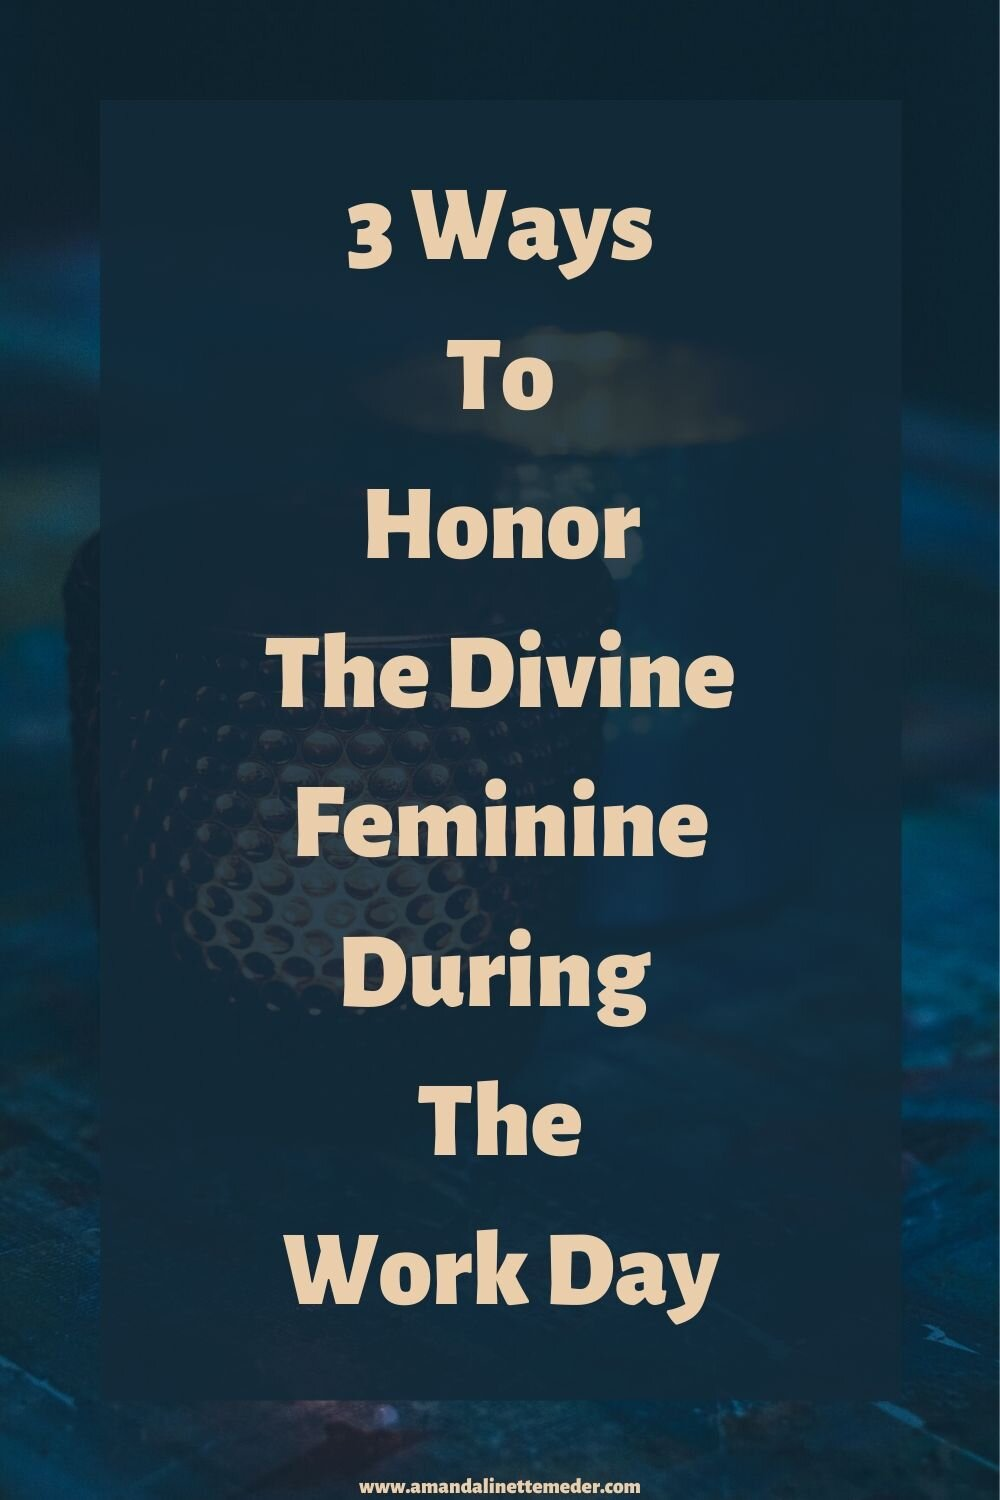 Tips to awaken the Divine Feminine at work. Photo of red candle in votive in front and blue votive in rear on textured surface by KatinkavomWolfenmond from Pixabay with text overlay of title, 3 Ways To Honor The Divine Feminine During The Work Day.